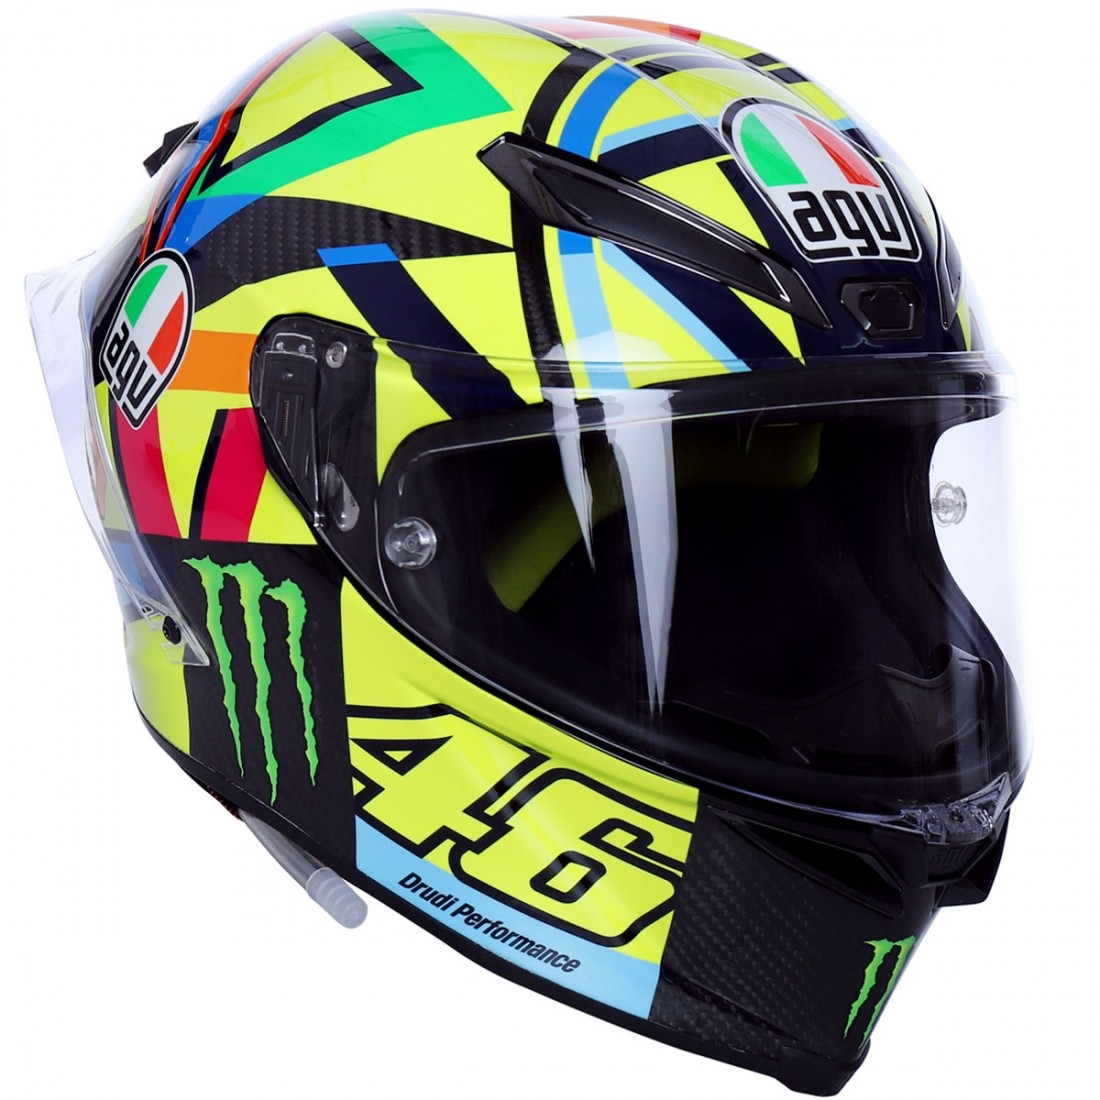 agv pista gp r rossi soleluna 2016 helmet motocard. Black Bedroom Furniture Sets. Home Design Ideas